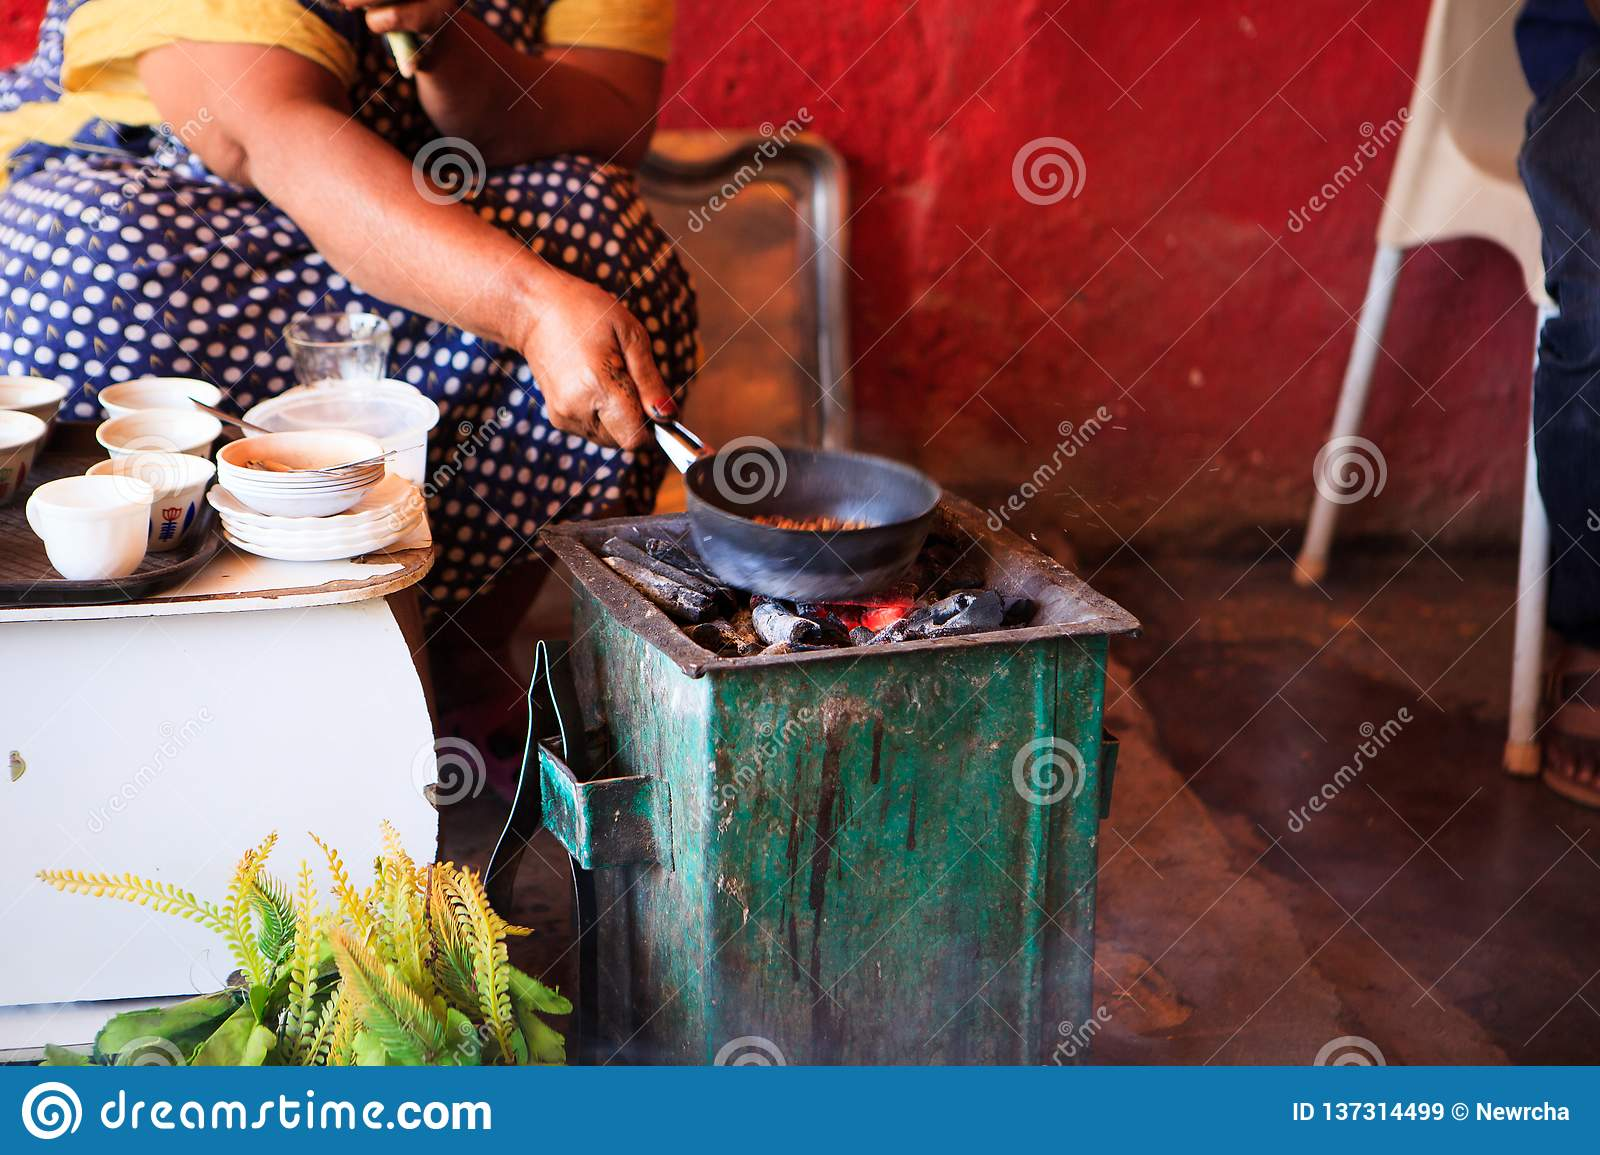 Woman preparing coffee for tourists in a traditional way.